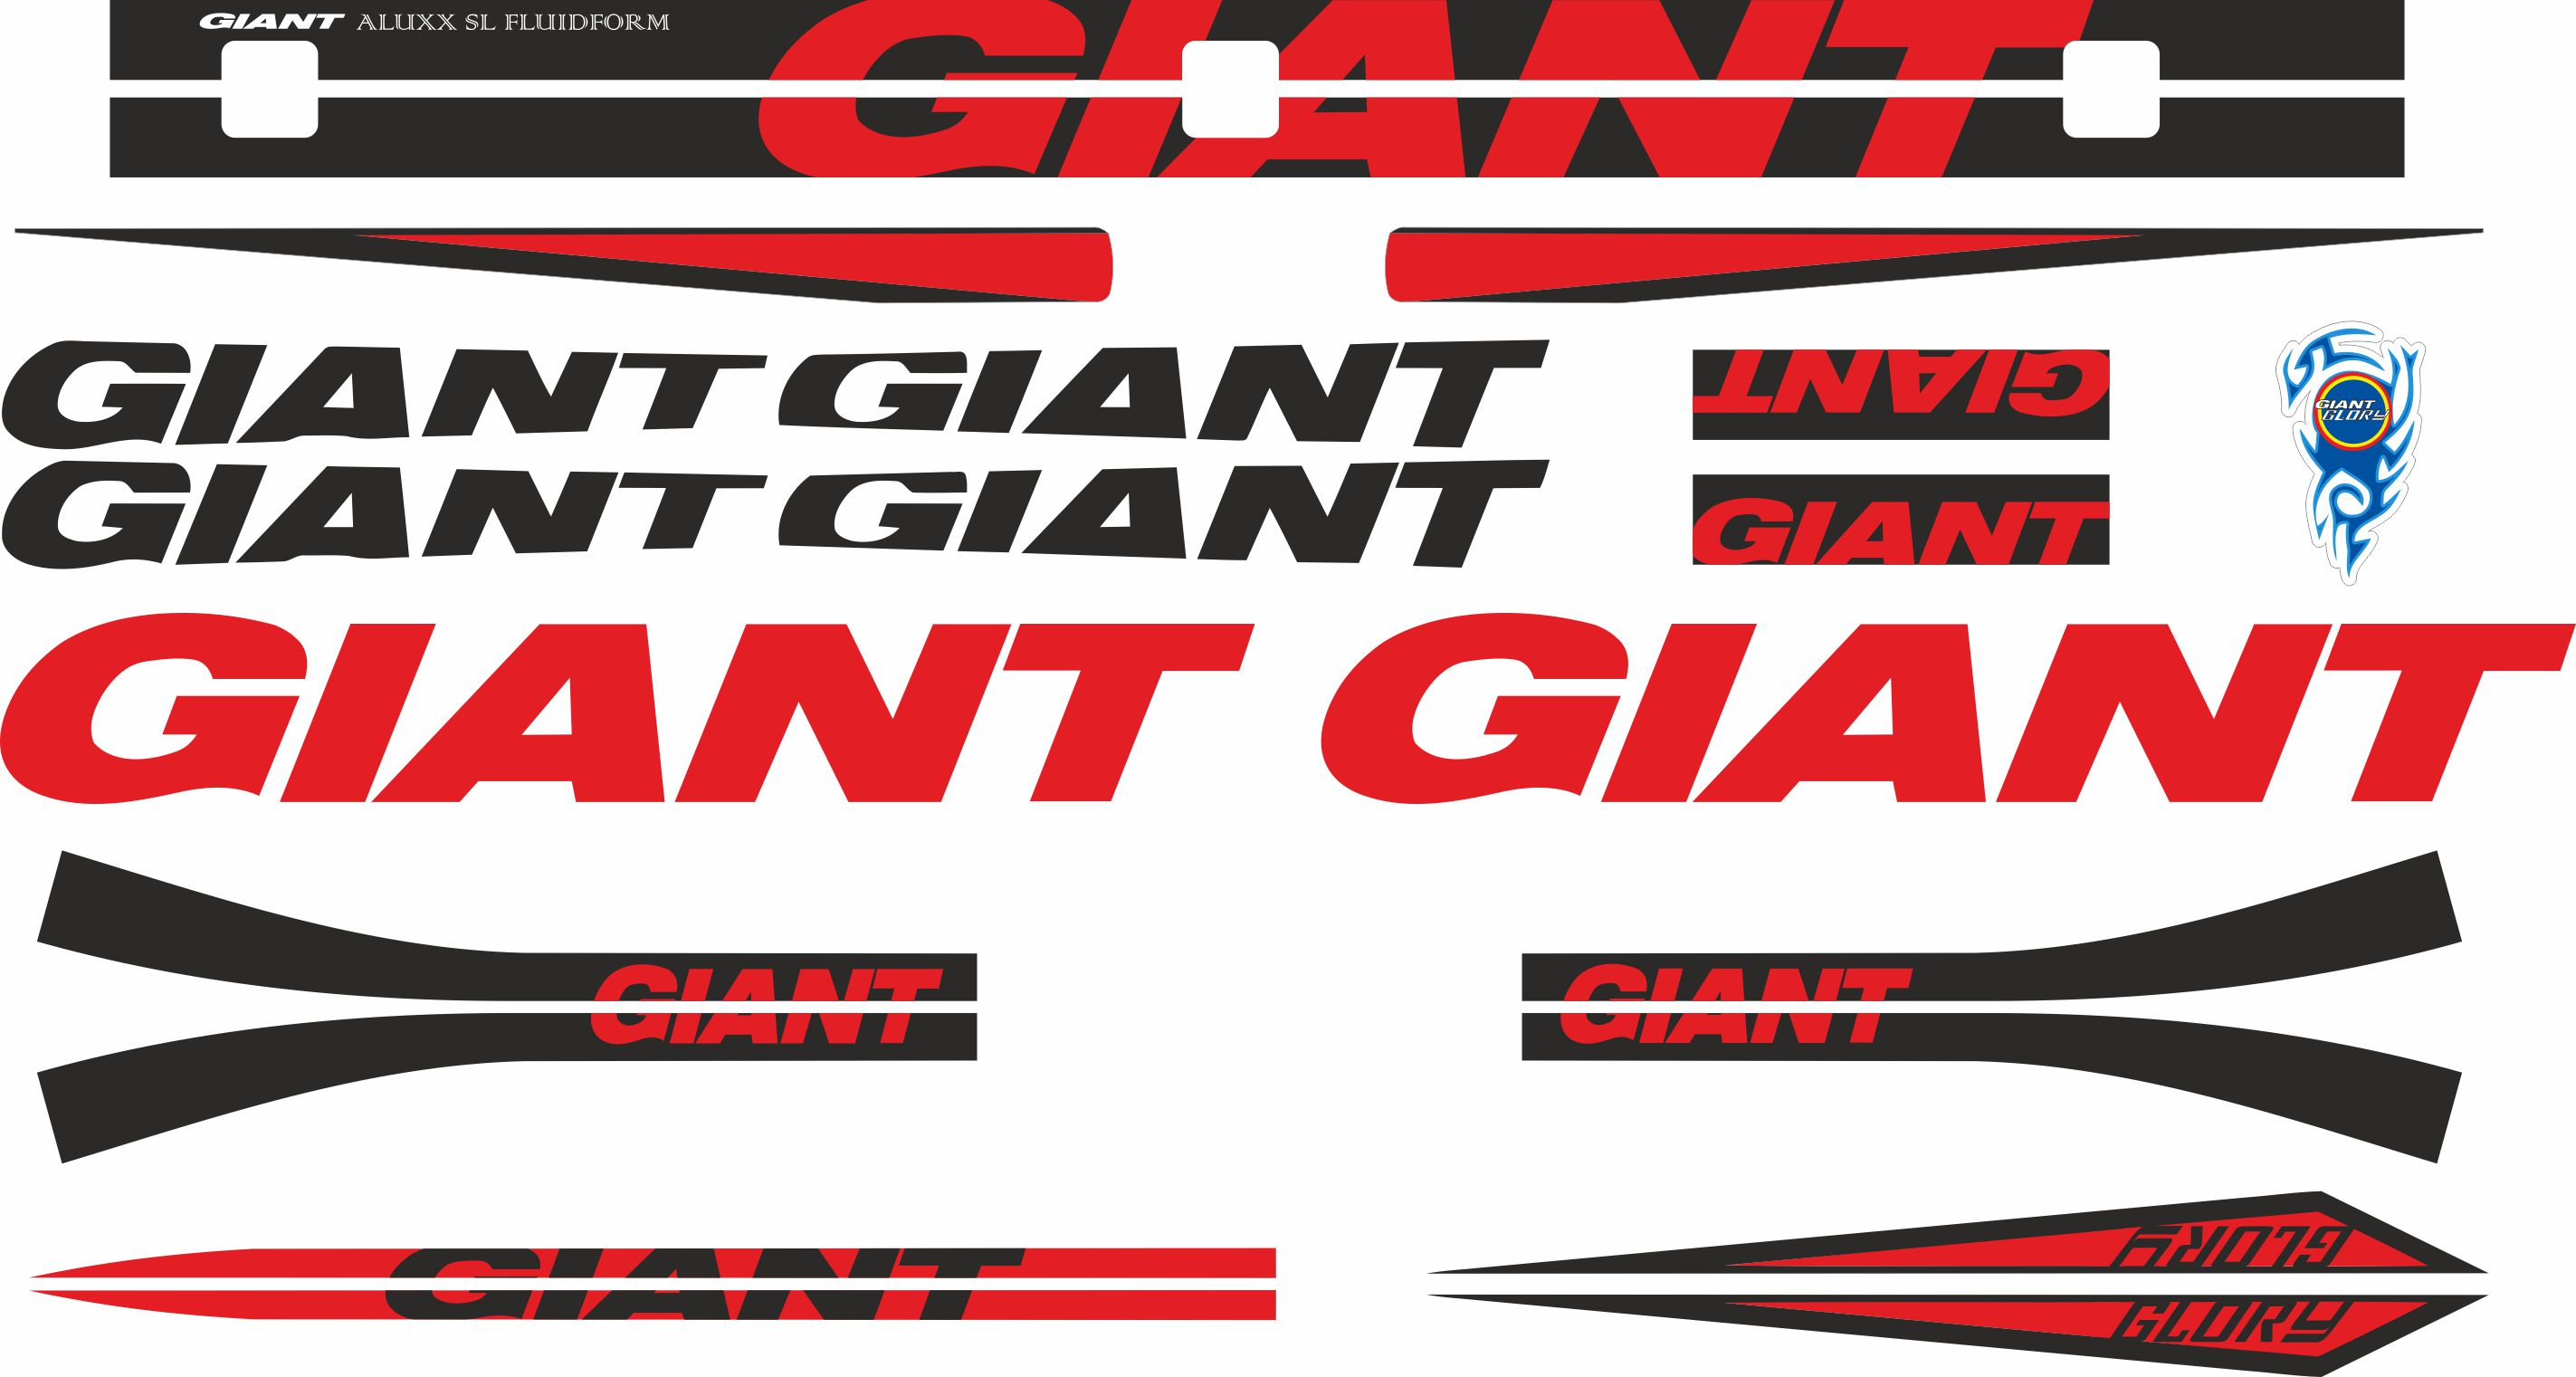 Details about giant glory frame stickers factory decal adhesive graphic vinyl set red